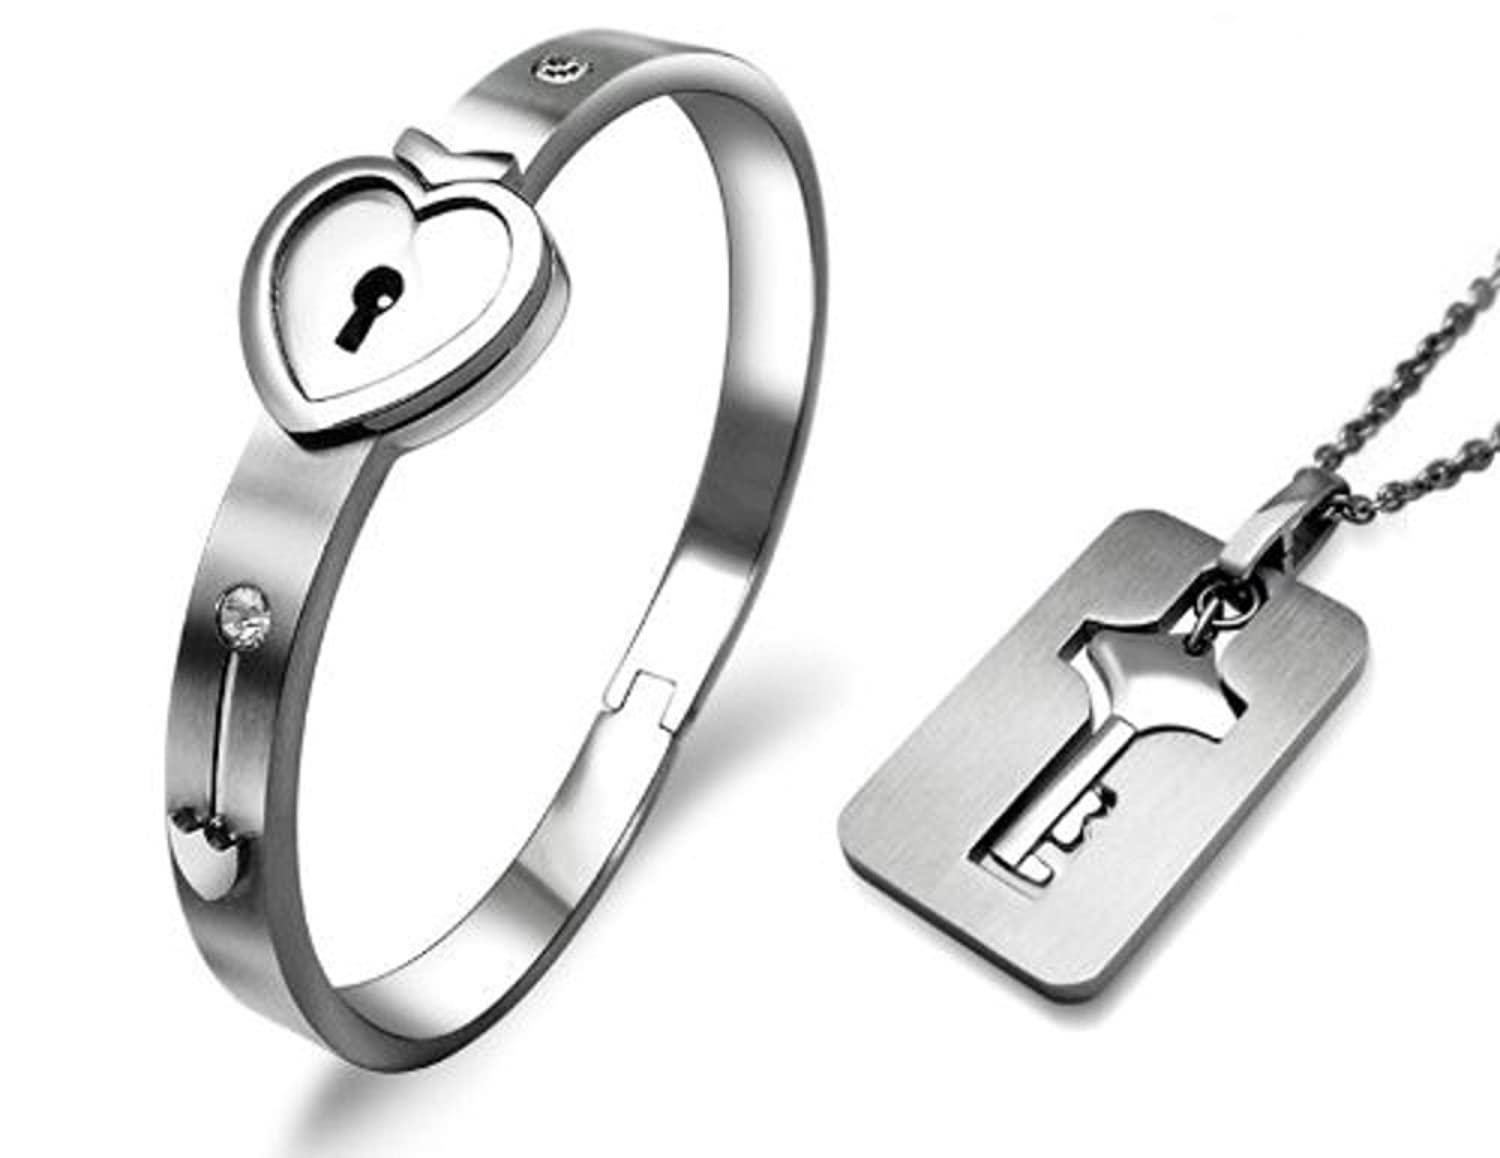 Amazon titanium stainless steel heart lock bangle bracelet amazon titanium stainless steel heart lock bangle bracelet matching key pendant necklace for couples 2pcs jss009 thanks giving gifts for her jewelry aloadofball Gallery